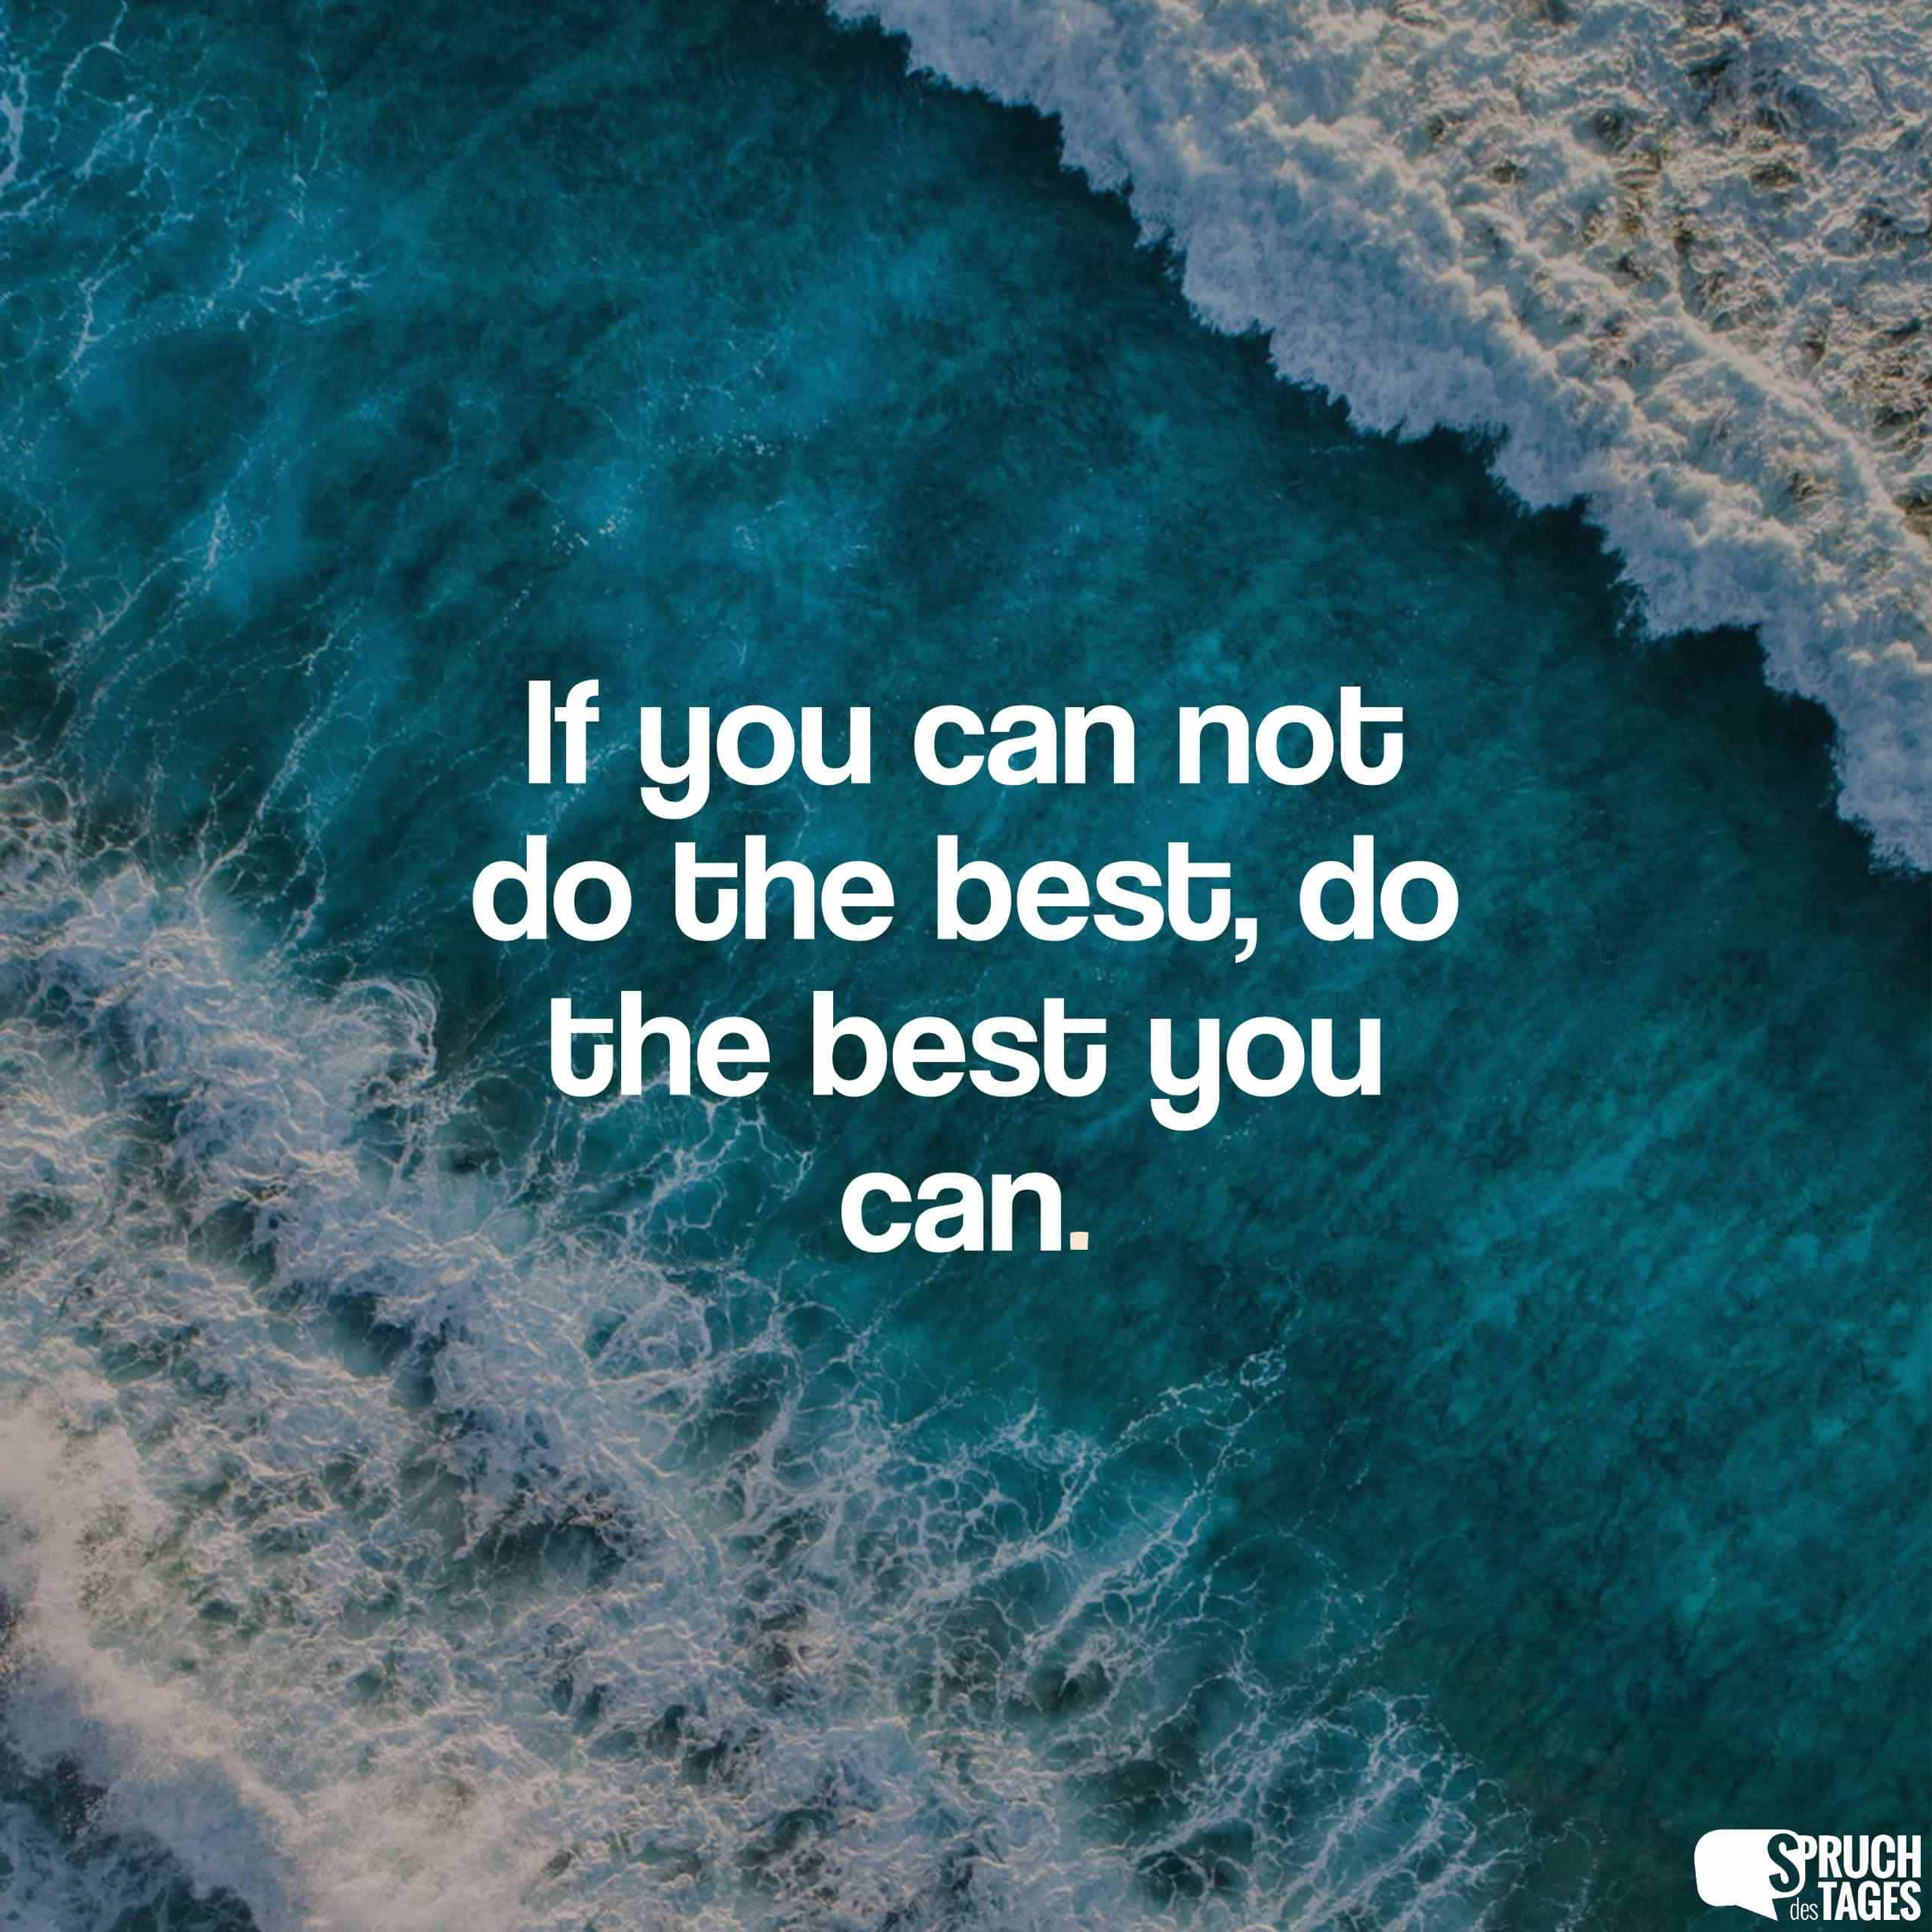 If you can not do the best, do the best you can.